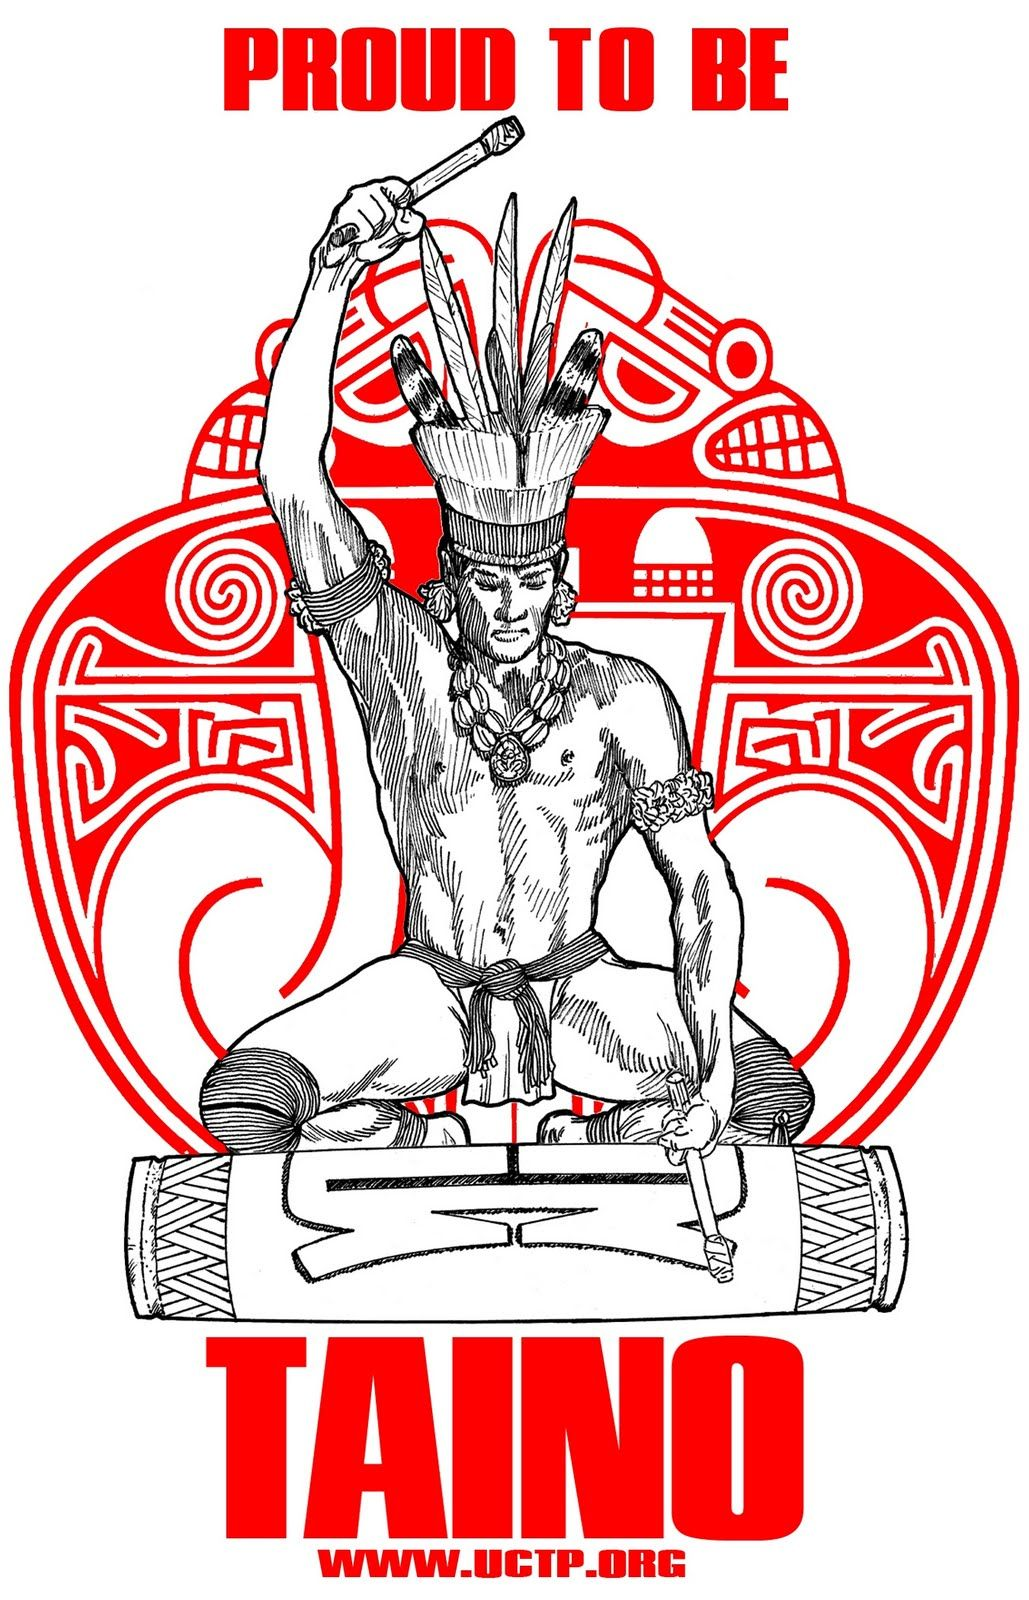 Puerto rican taino indian tattoos stuff pinterest puerto puerto rican taino indian tattoos biocorpaavc Choice Image